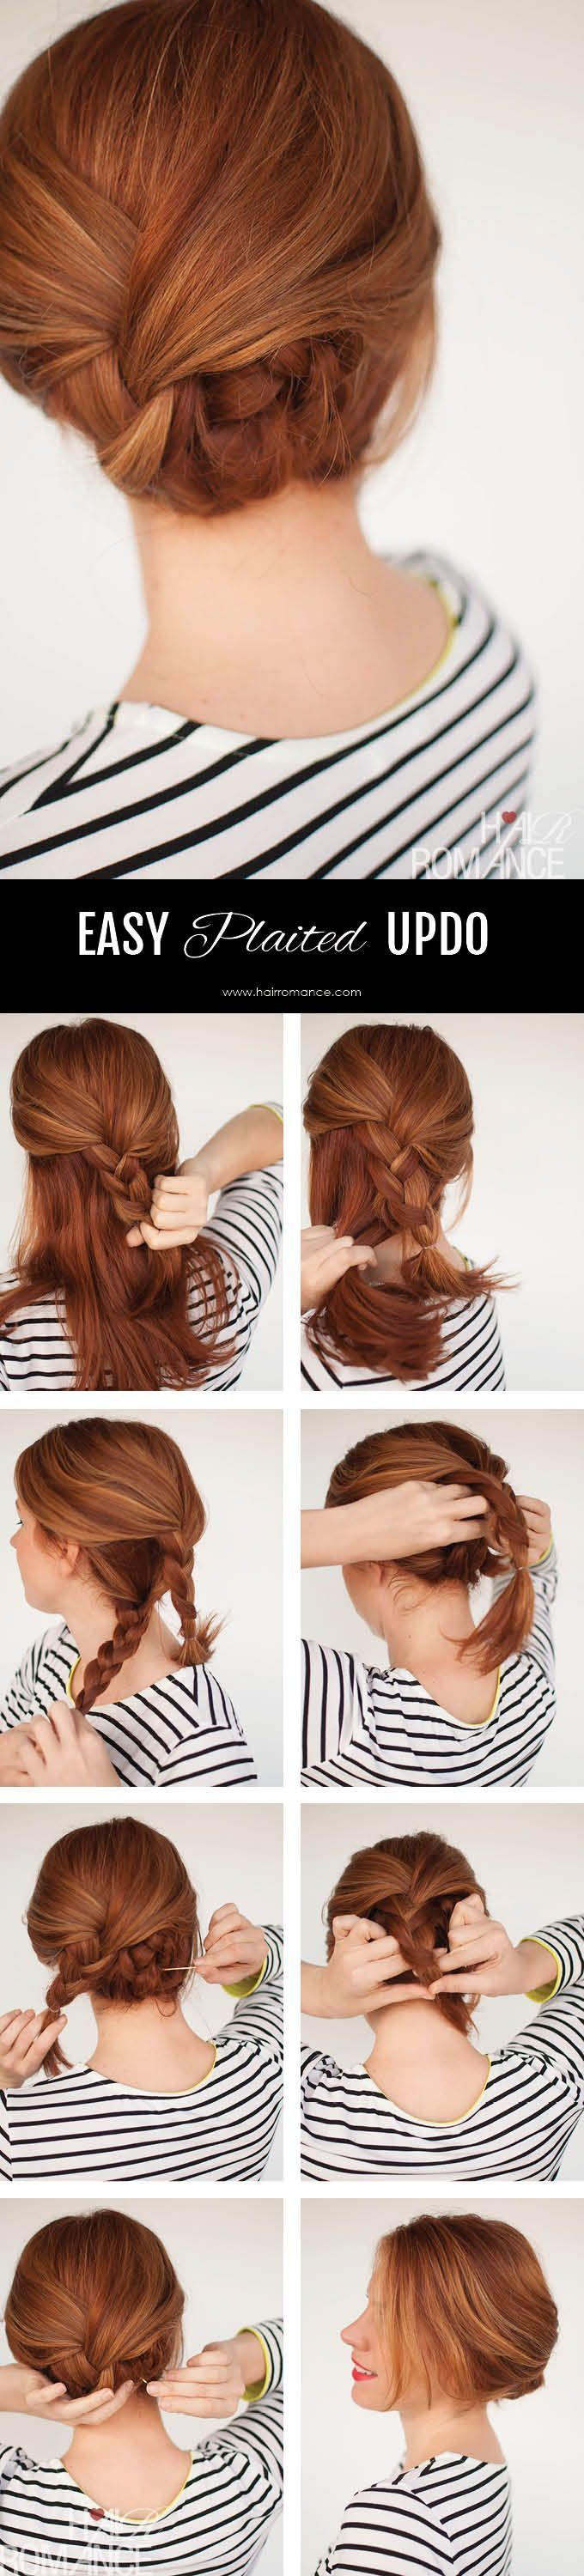 easy plaited updo hairstyle tutorial